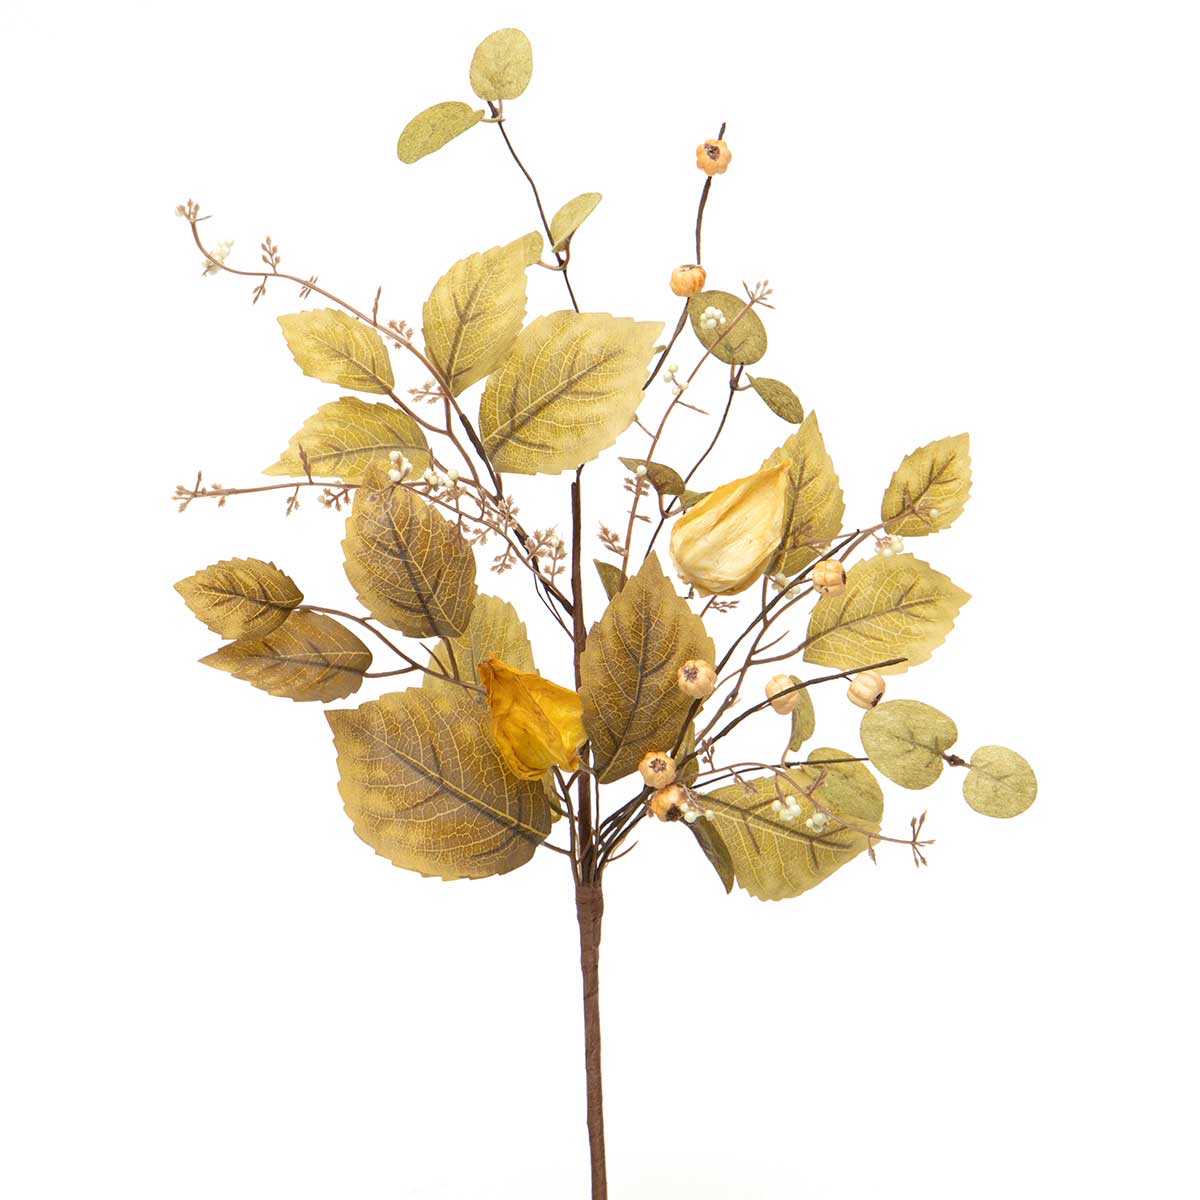 MIXED LANTERN LEAF PIK WITH PODS &